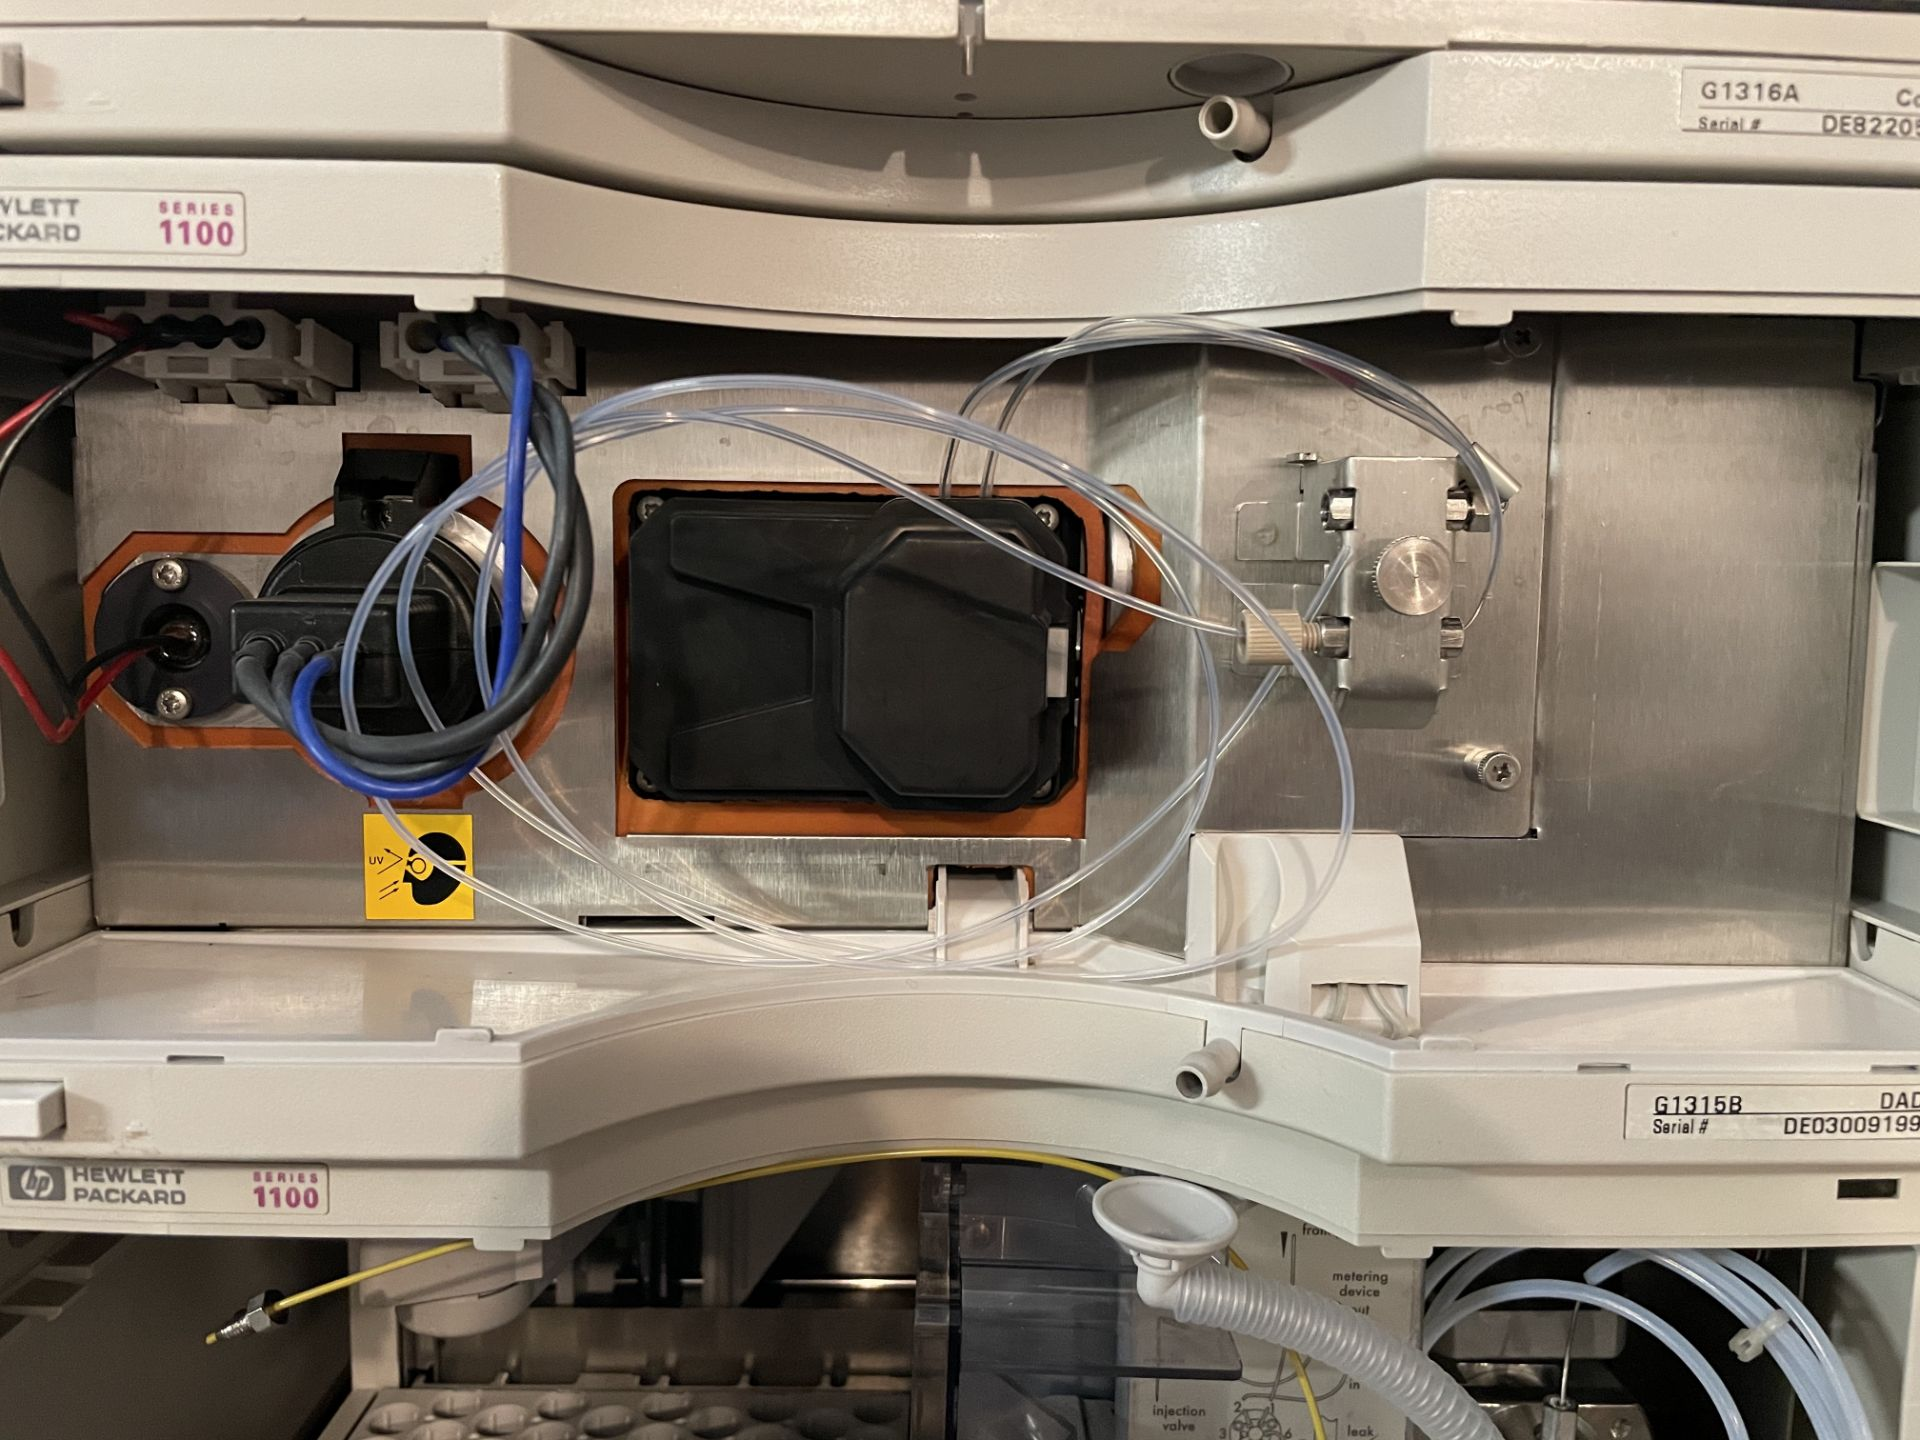 Used Agilent 1100 HPLC. Model 1100. Fully complete & functional cannabinoid potency testing system. - Image 11 of 22